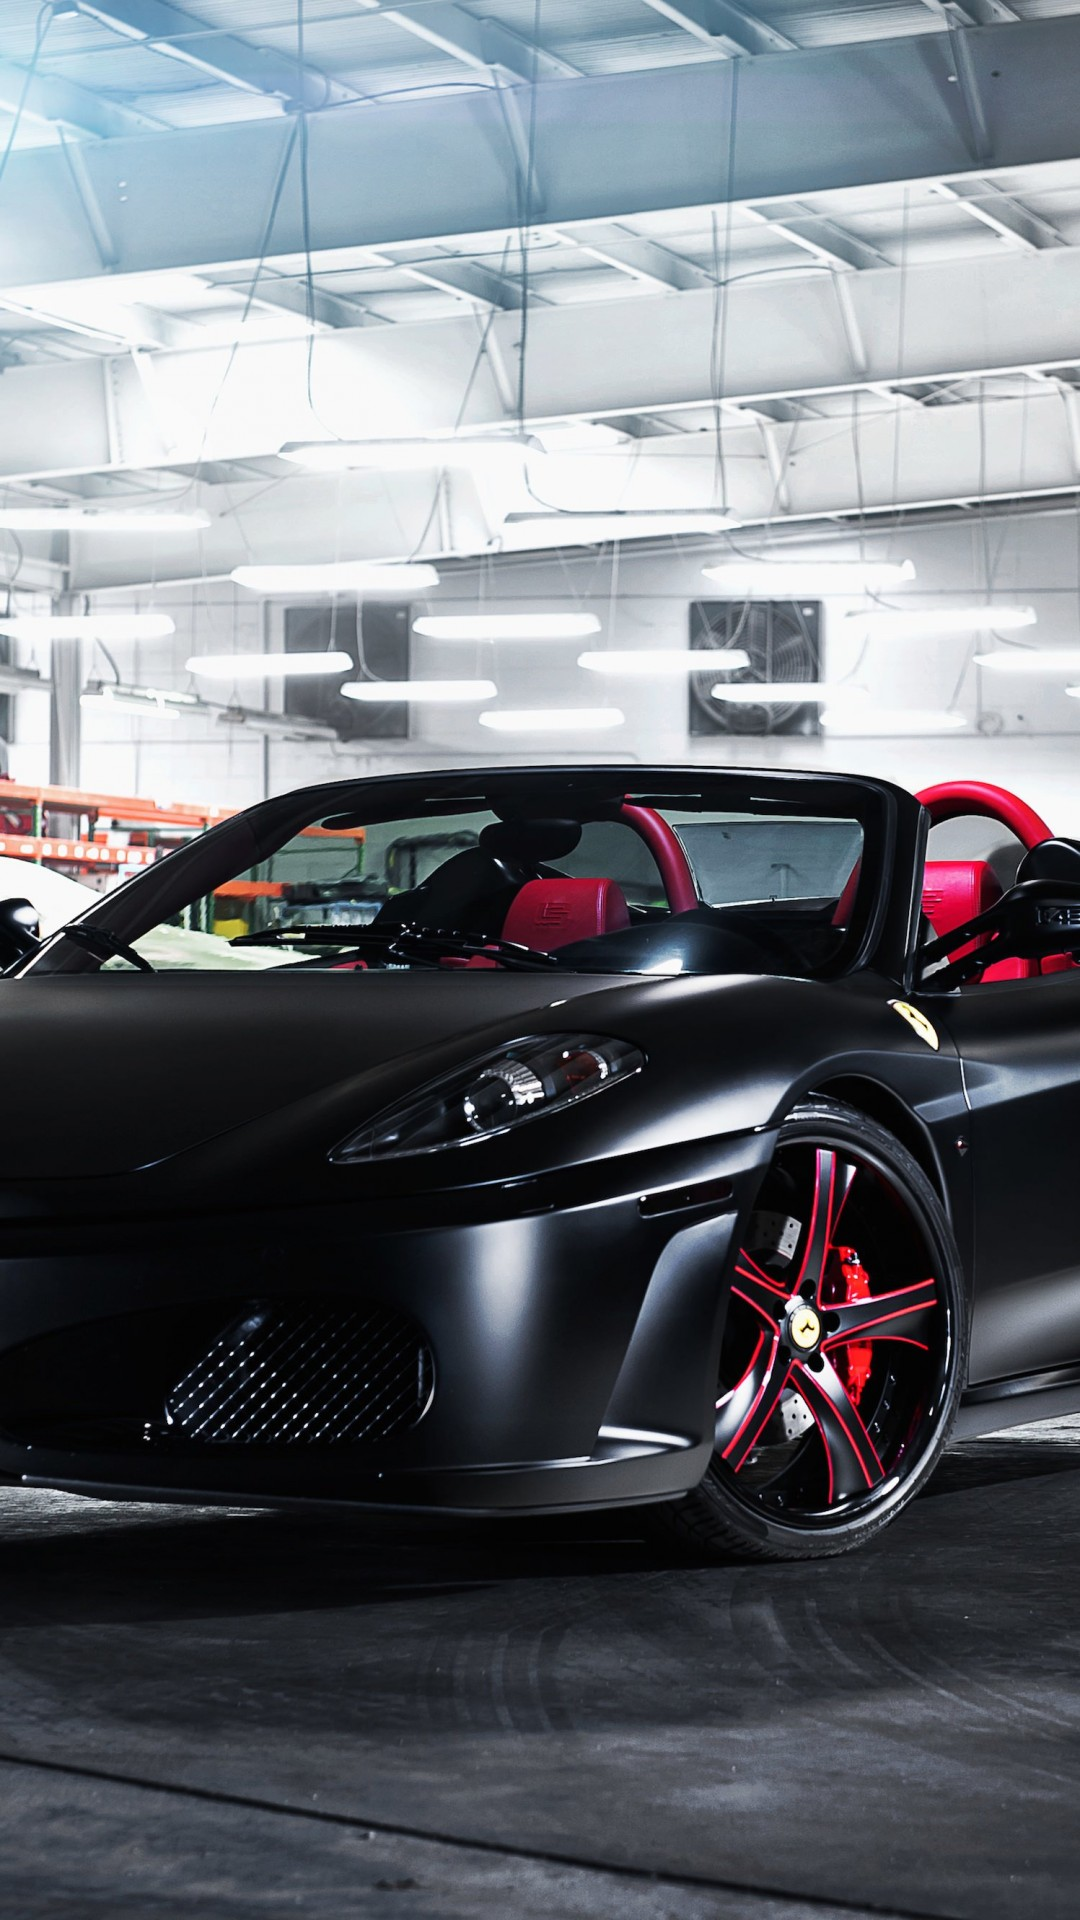 Matte Black Ferrari F430 on Savini Wheels Wallpaper for SONY Xperia Z1